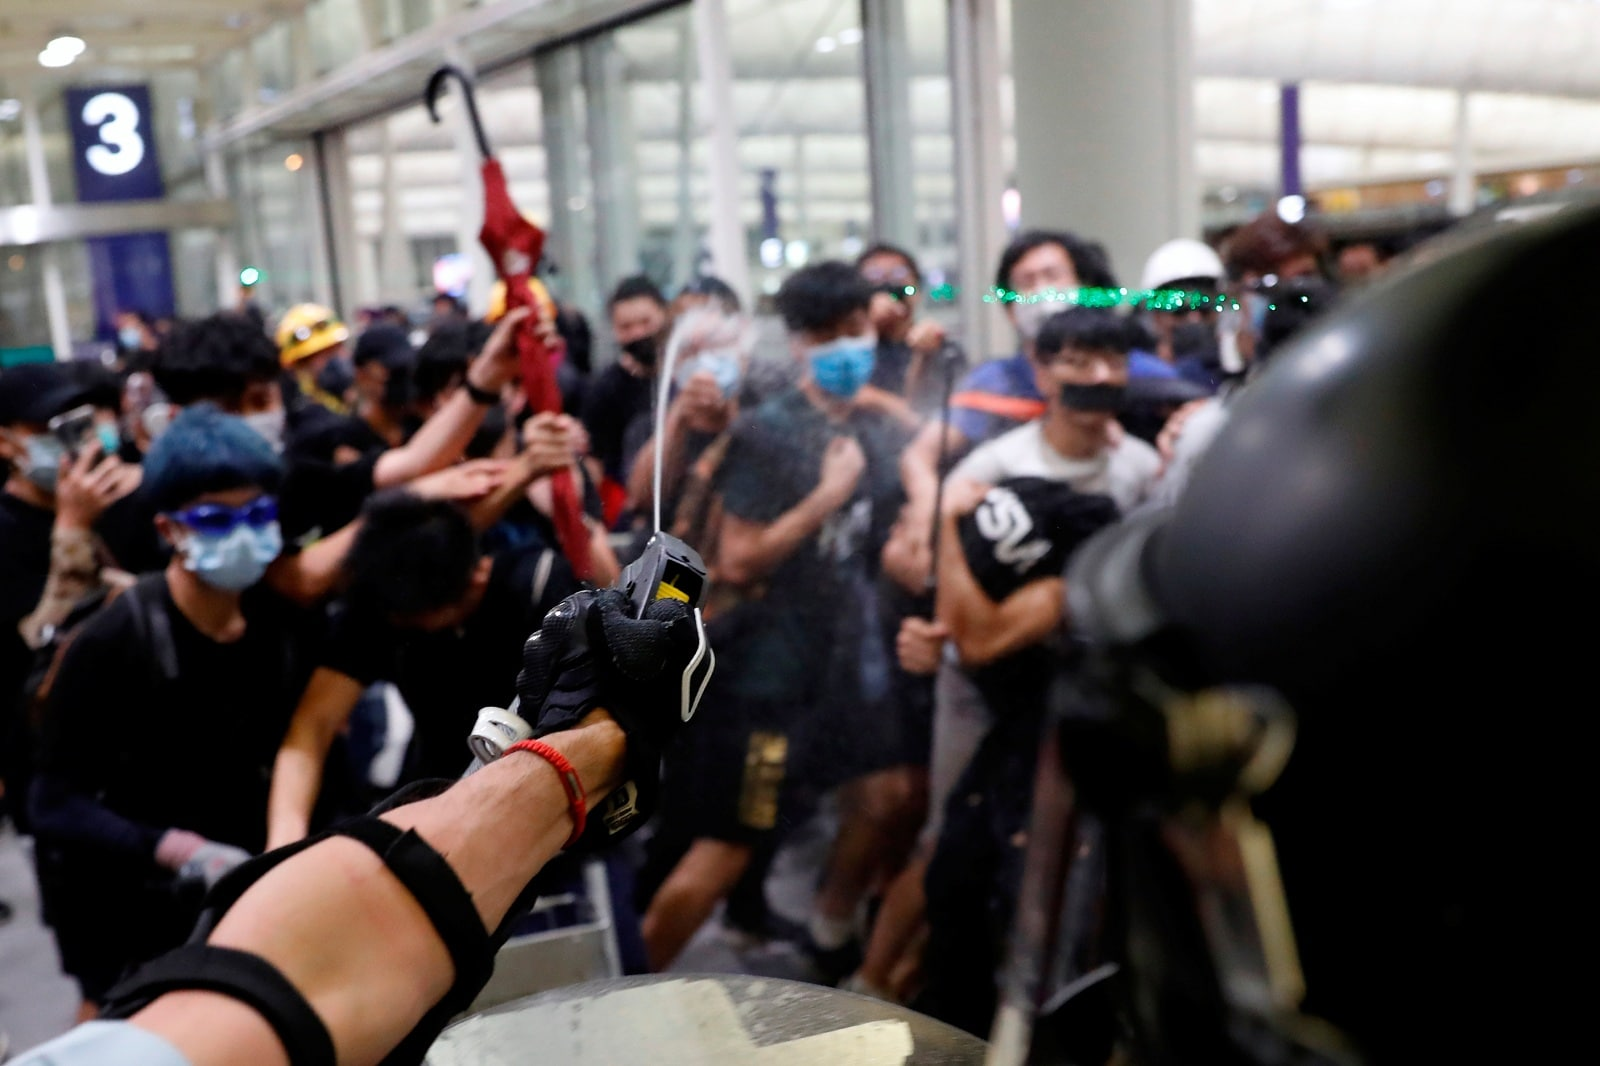 Riot police use pepper spray to disperse anti-extradition bill protesters during a mass demonstration after a woman was shot in the eye, at the Hong Kong international airport, in Hong Kong, China, August 13, 2019. REUTERS/Tyrone Siu